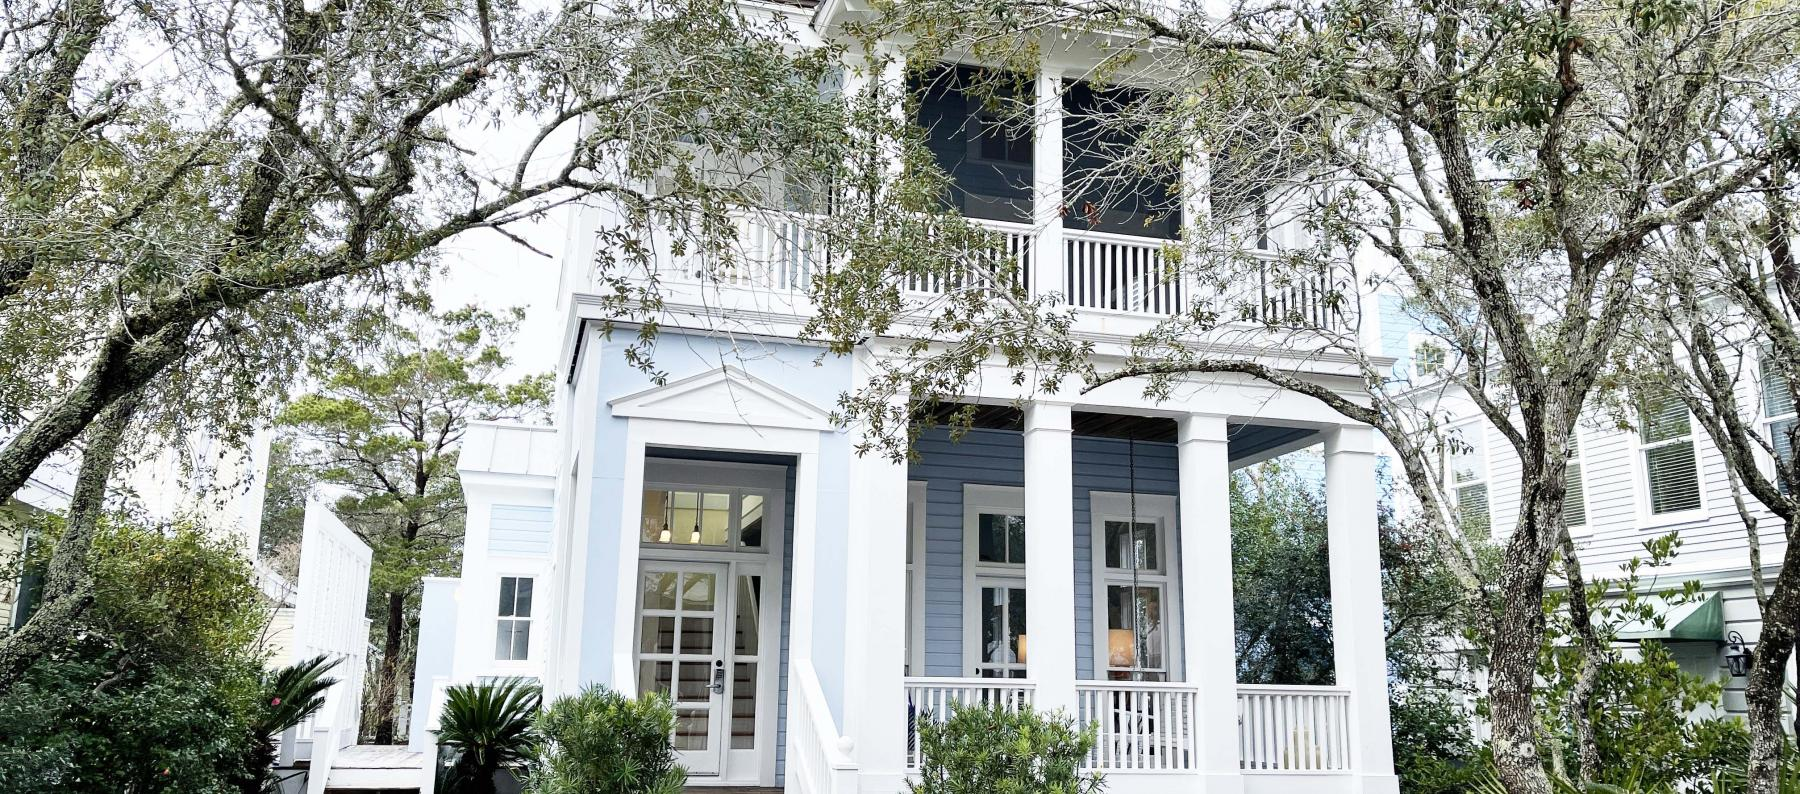 This Side of Paradise cottage in Seaside, Florida